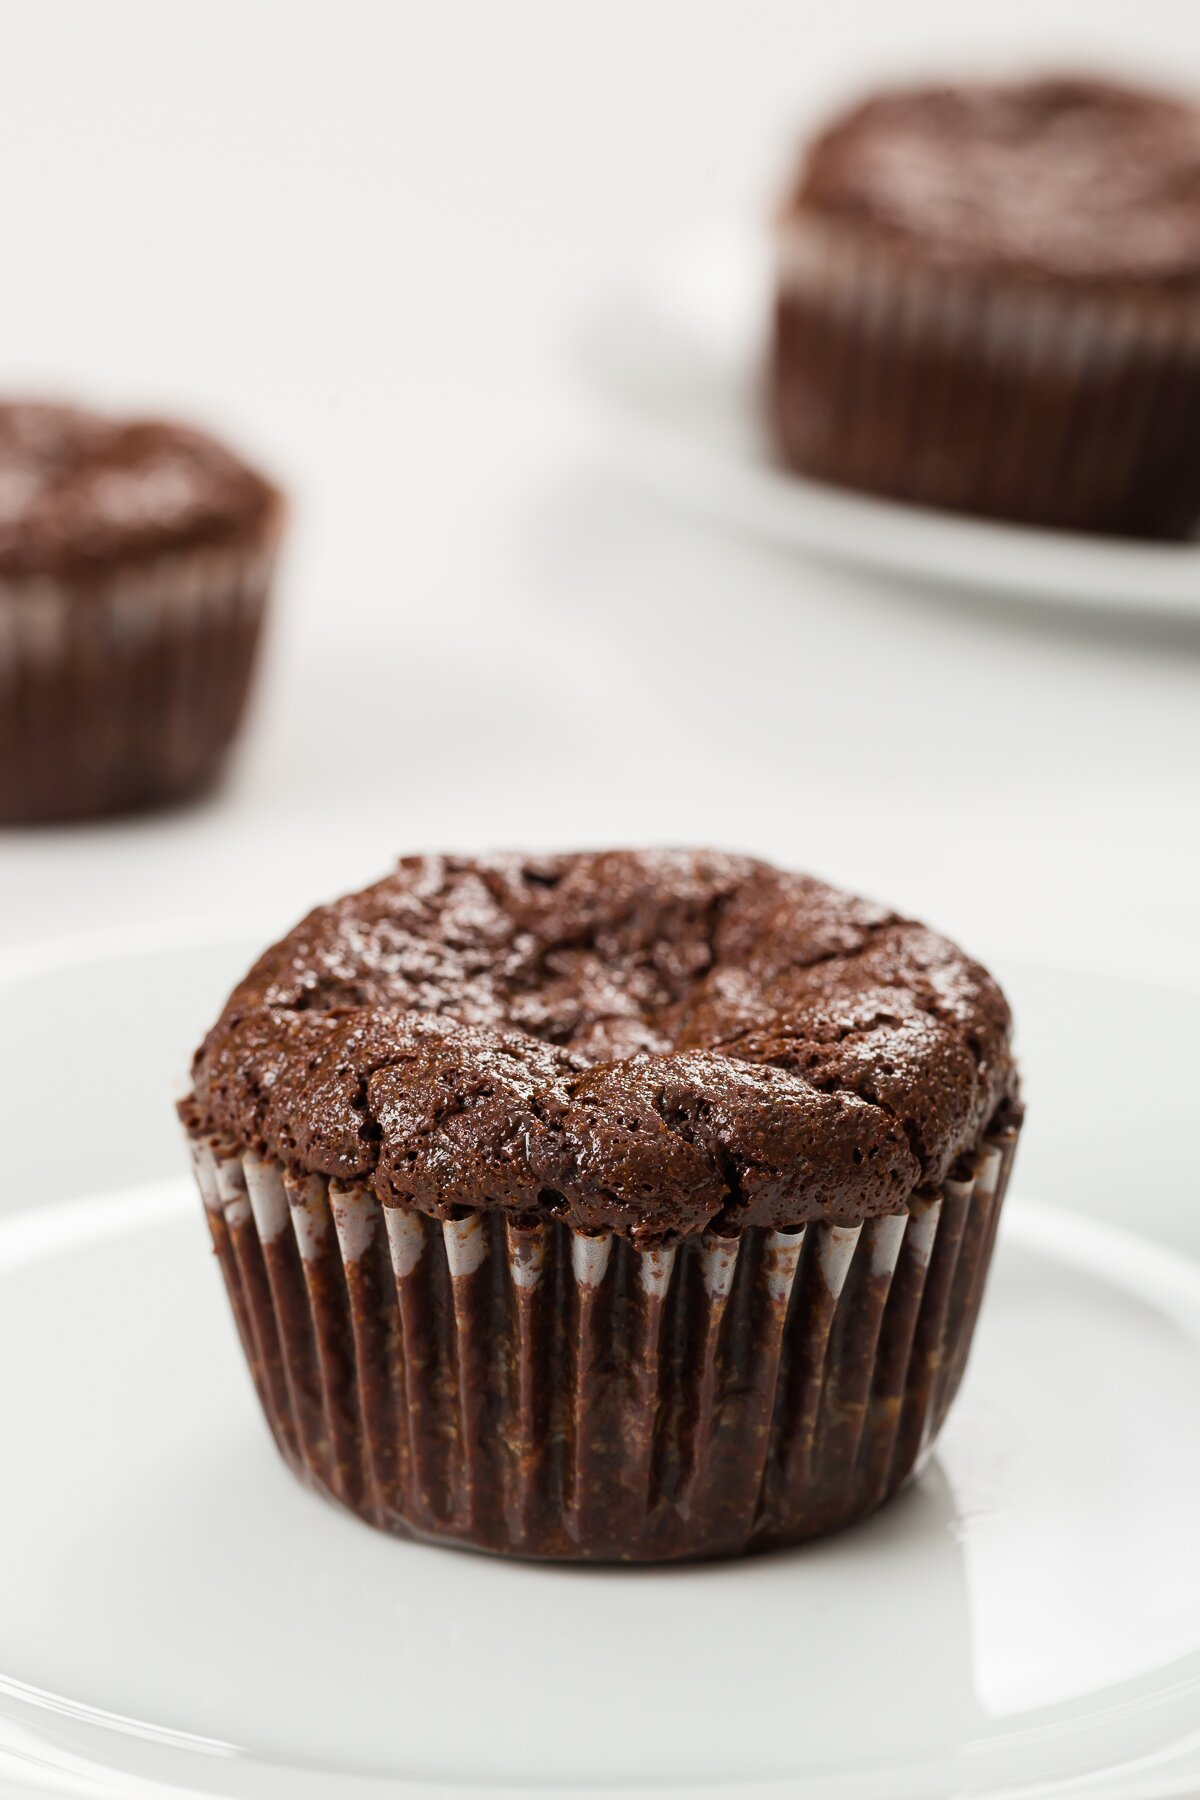 flourless chocolate cupcake on a plate with no topping and other cupcakes in the background